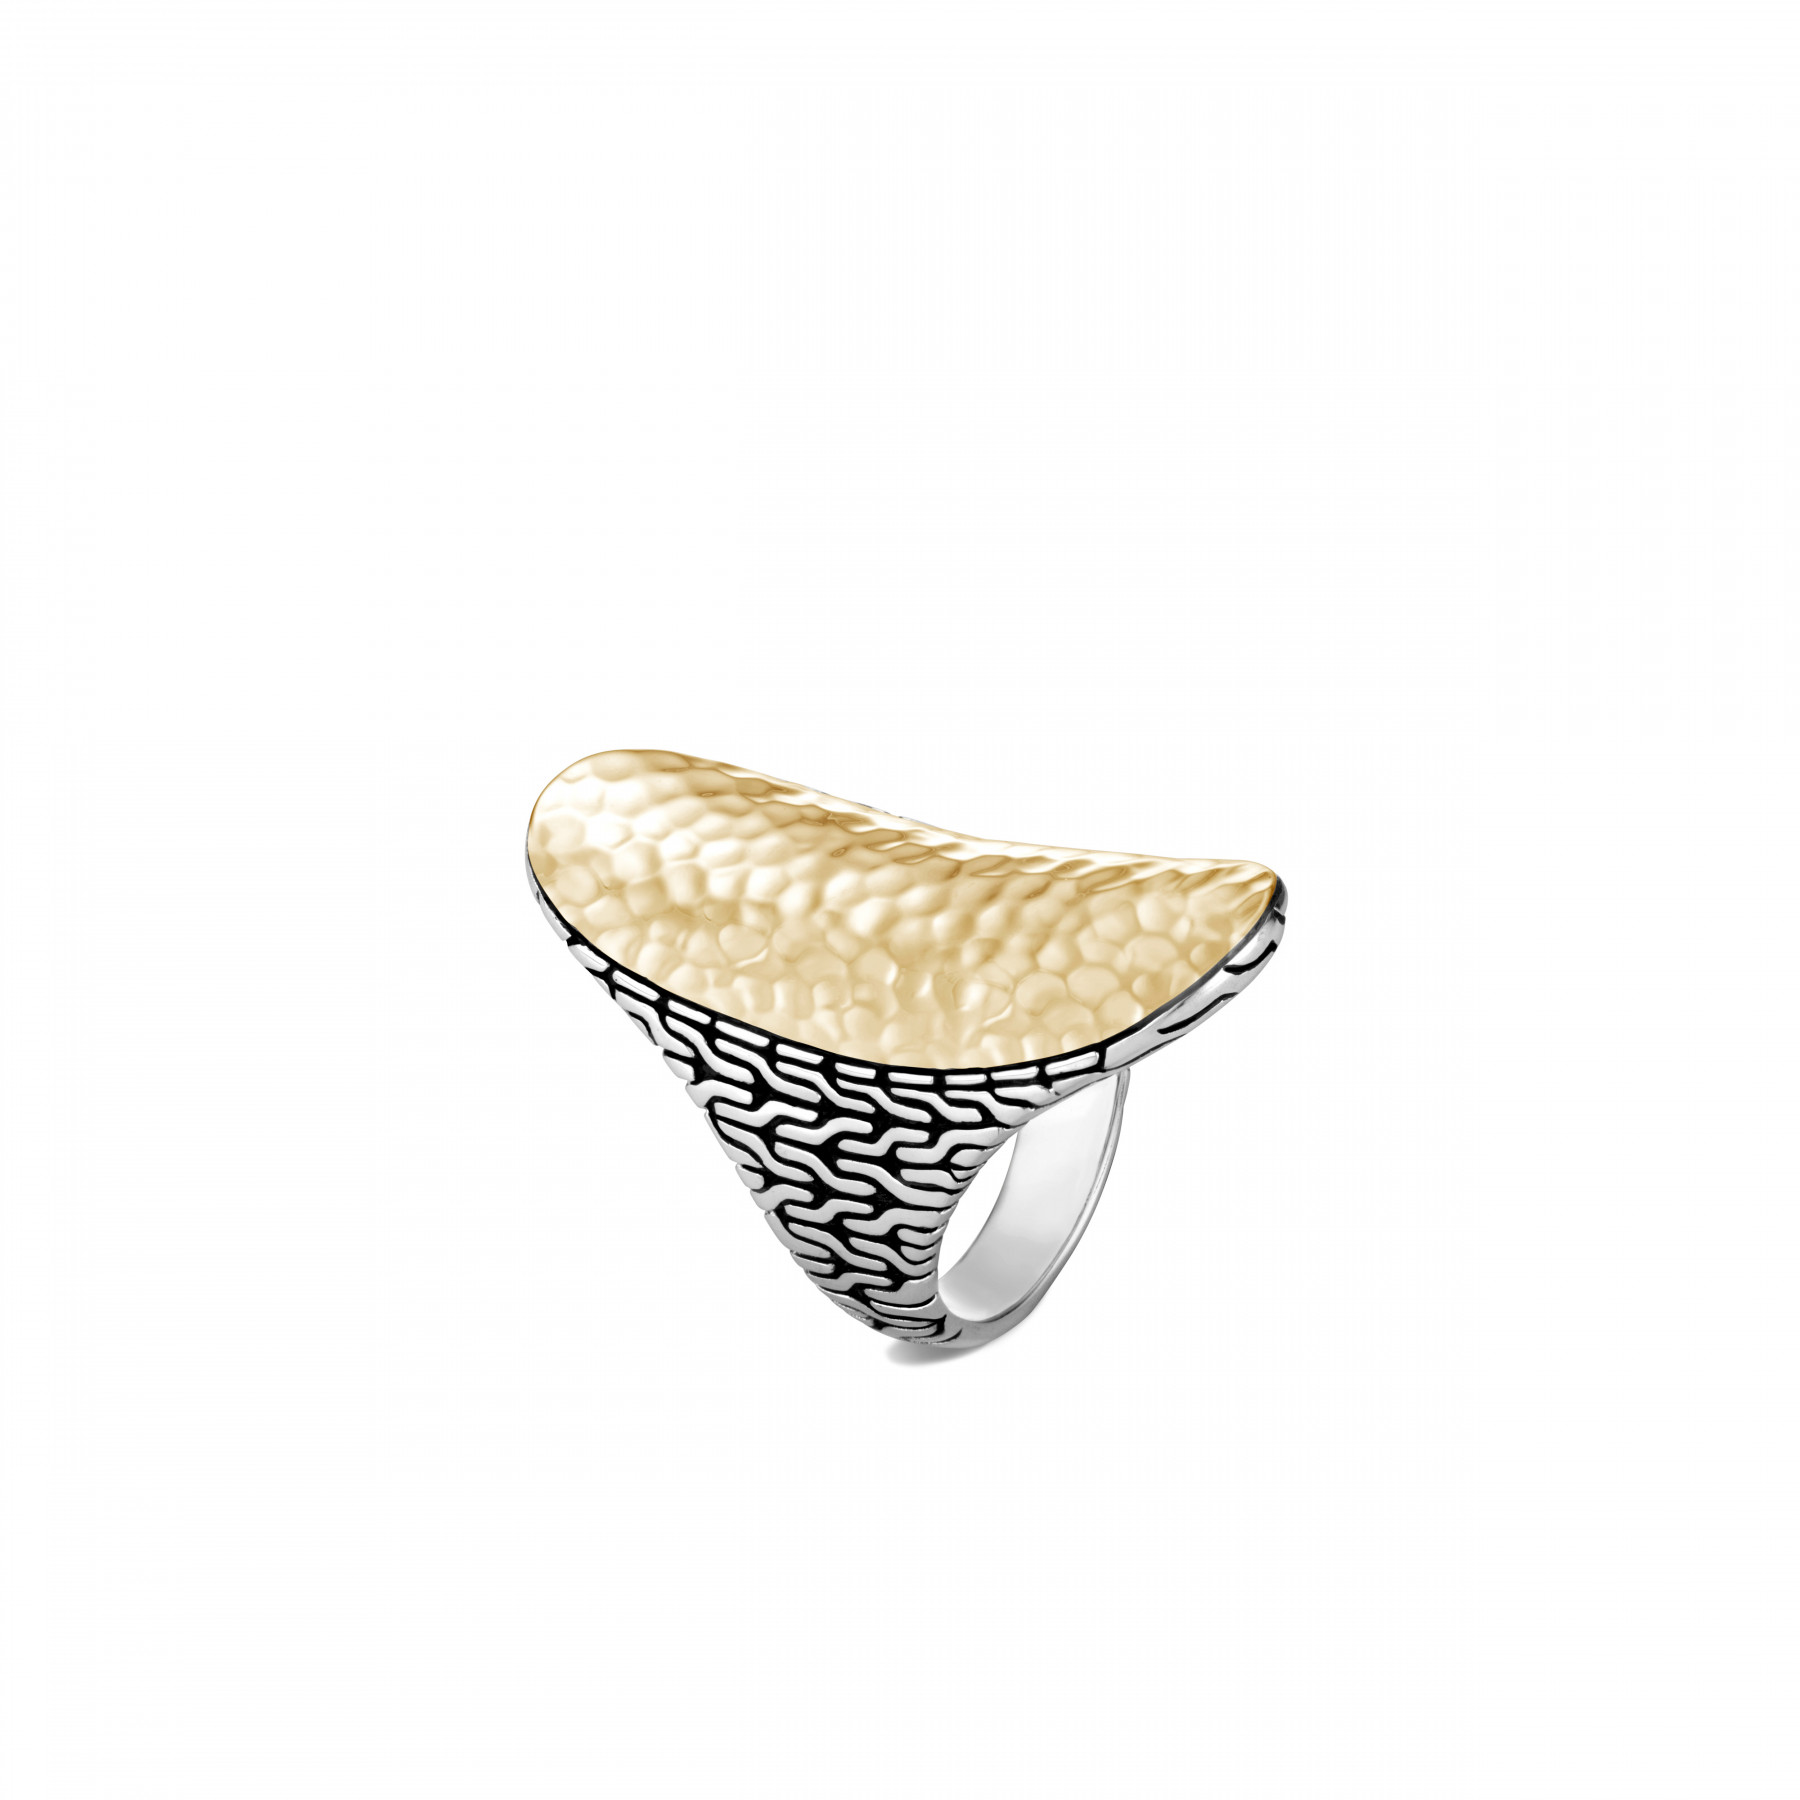 John Hardy Classic Chain Silver and Gold Saddle Ring